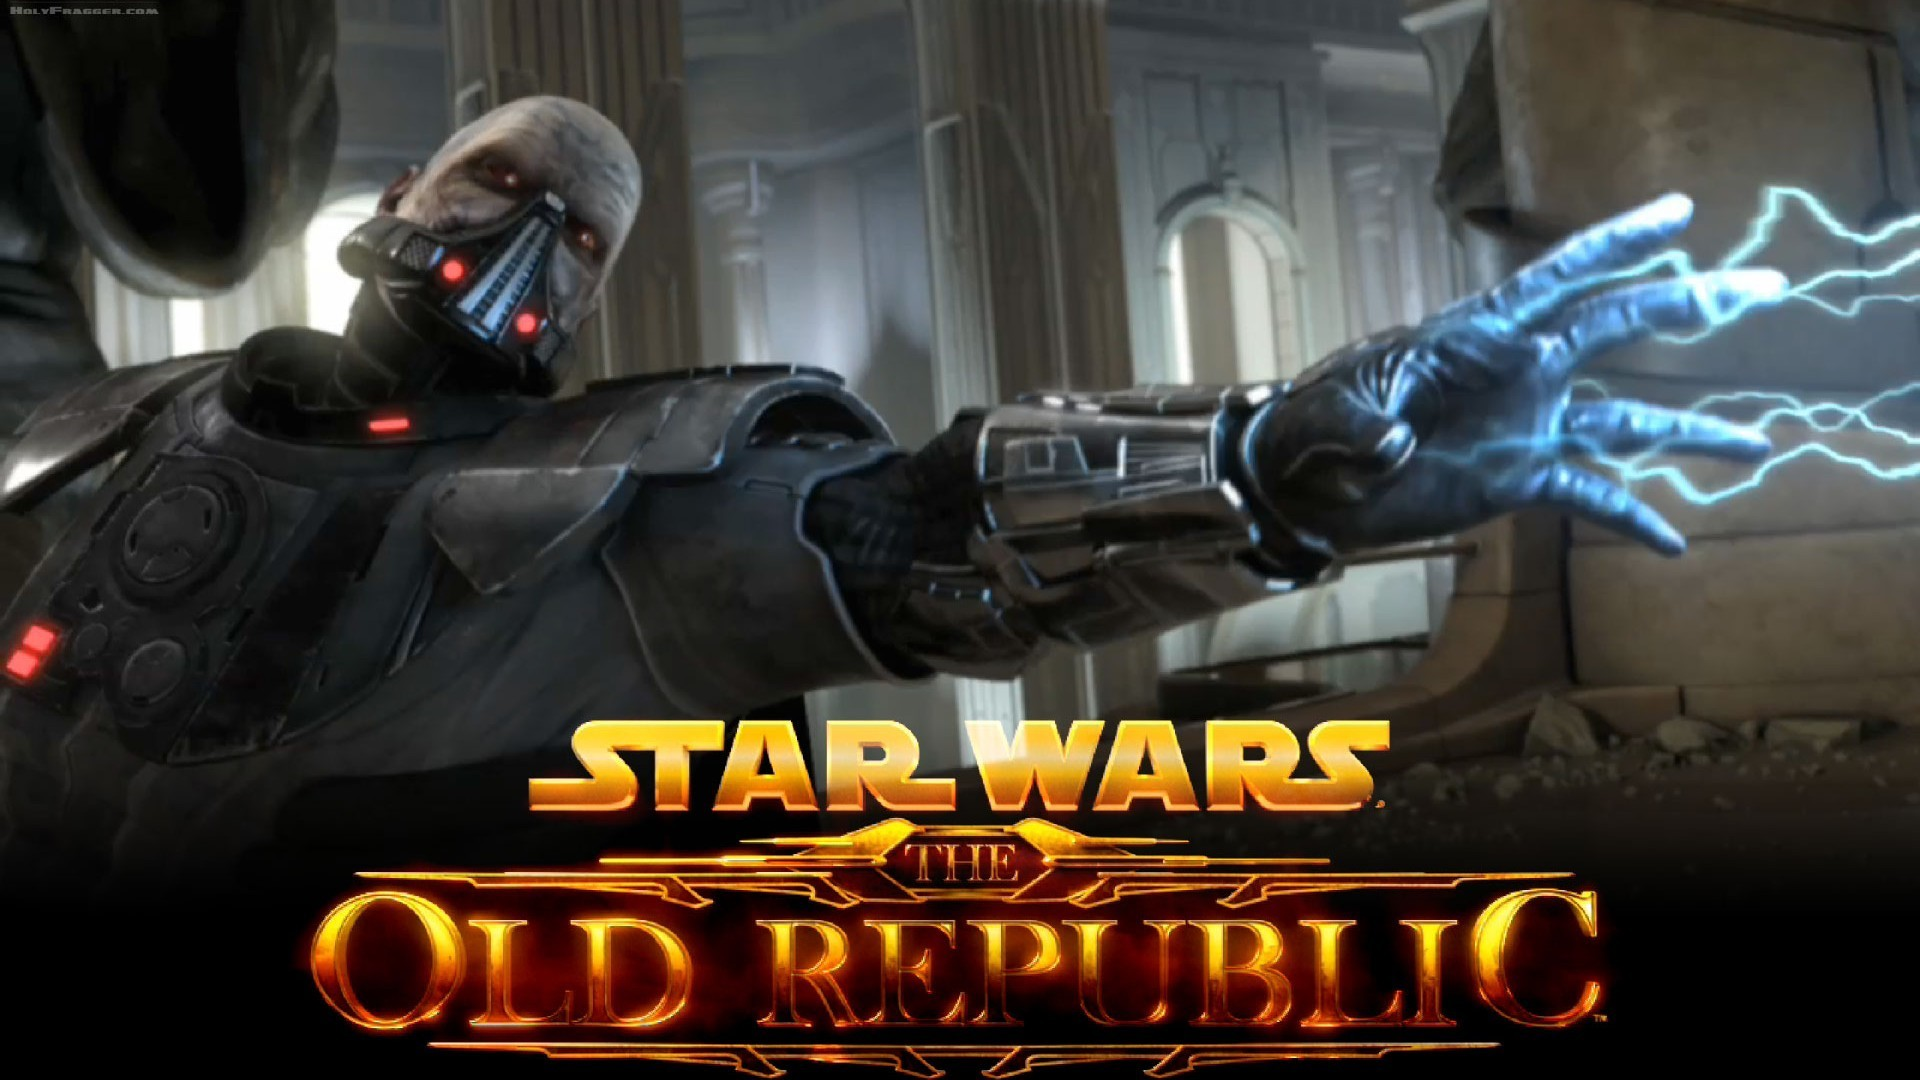 1920x1080 large-swtor-wallpaper-1920×1080-1920×1080-hd-for-mobile-WTG3107081